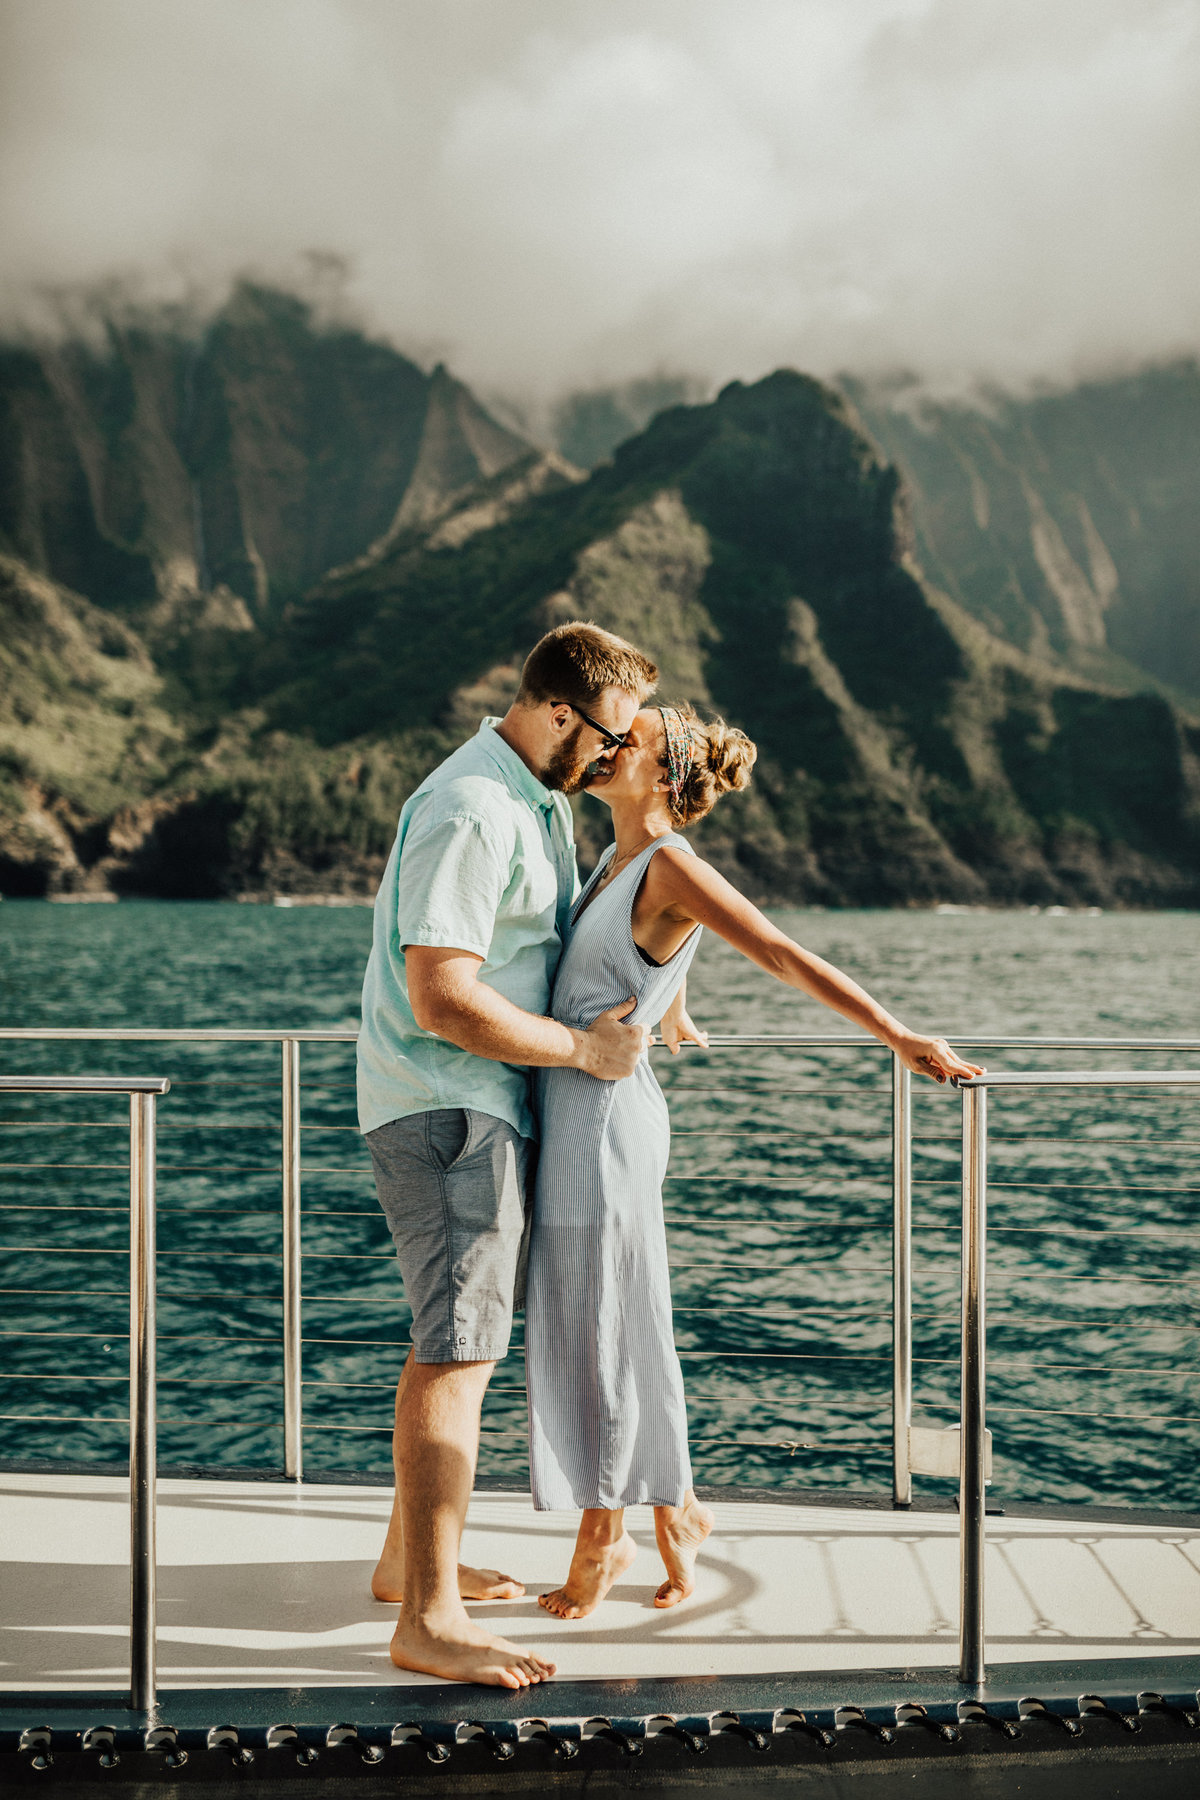 kauai-hawaii-napali-coast-couple-session-jordan-lee-dooley-soul-scripts-lindsey-roman-destination-elopement-photographer-52